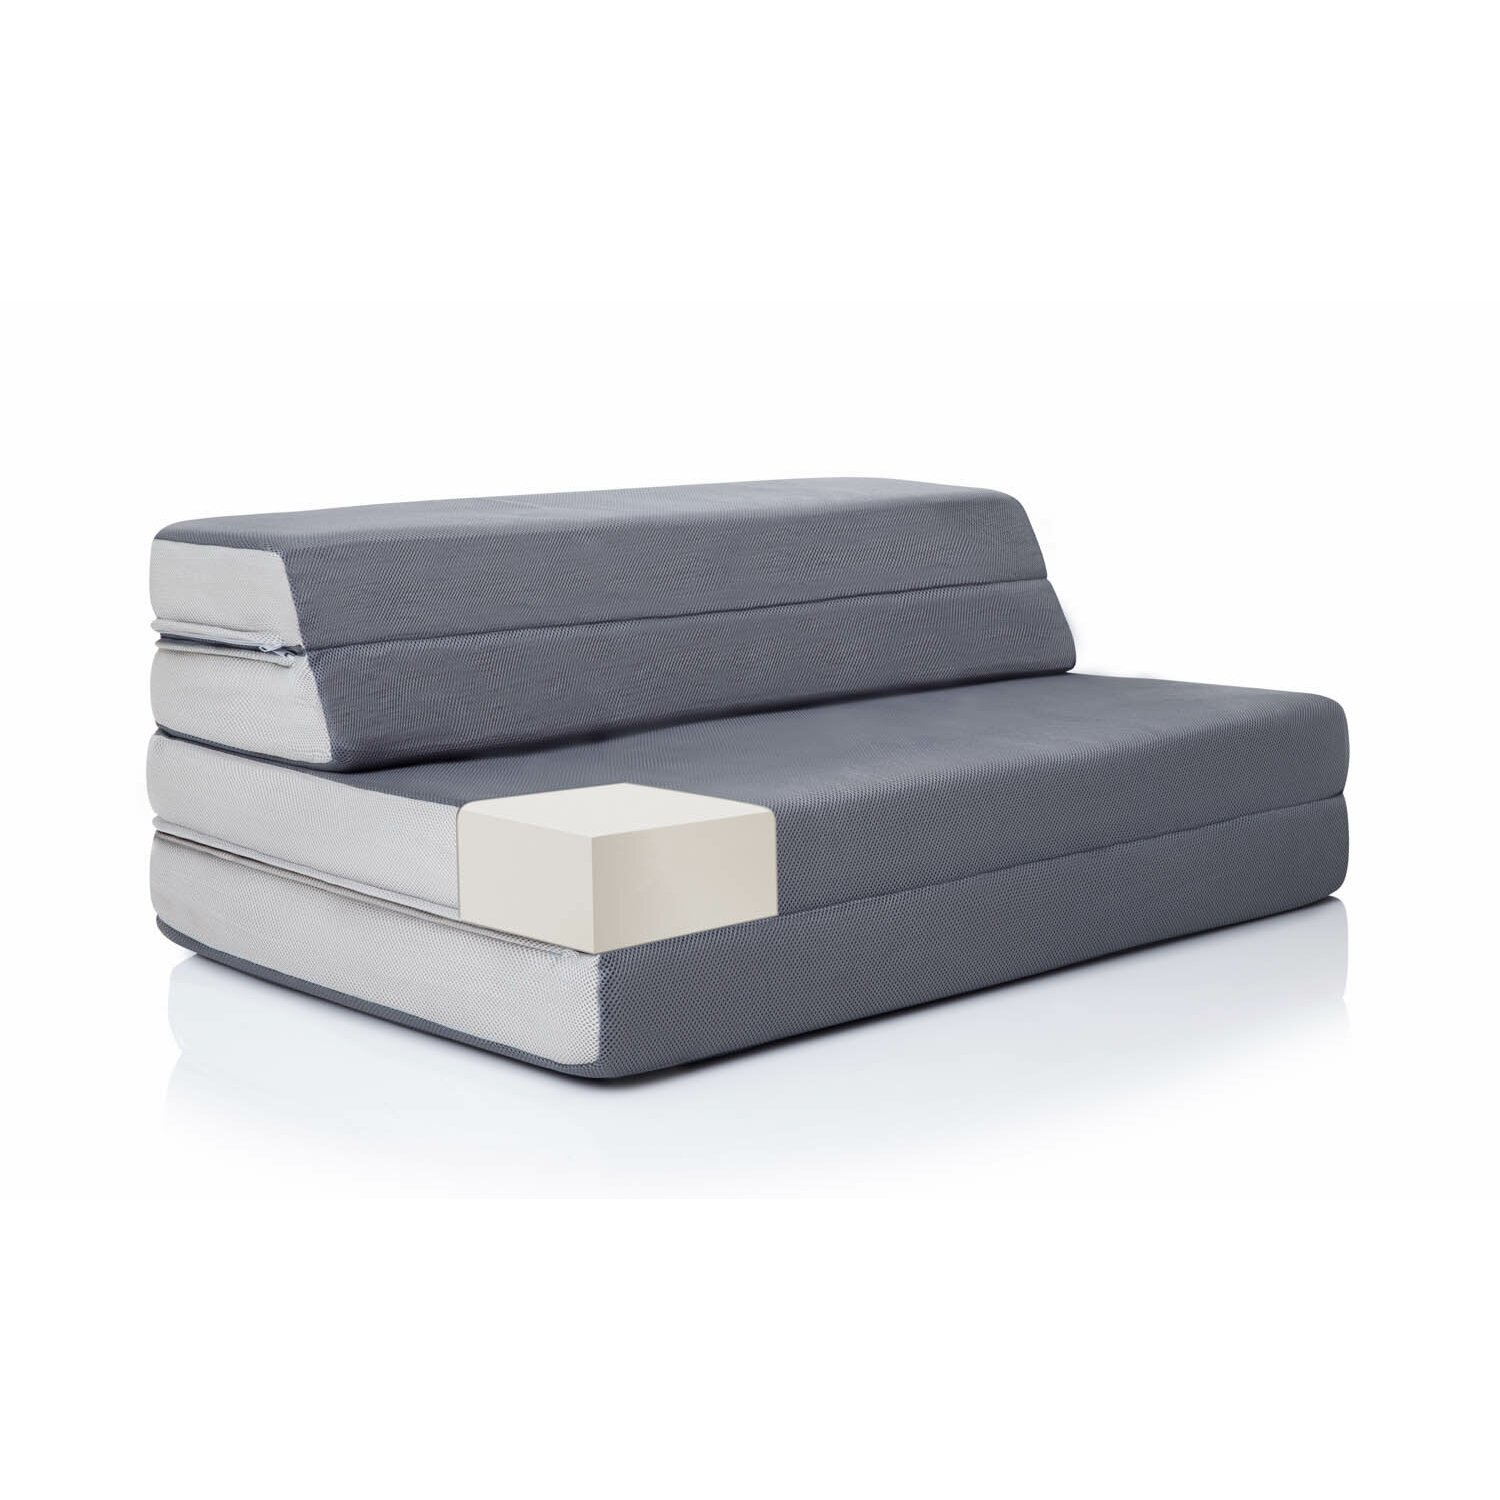 "Lucid Folding 4"" Foam Mattress & Reviews"